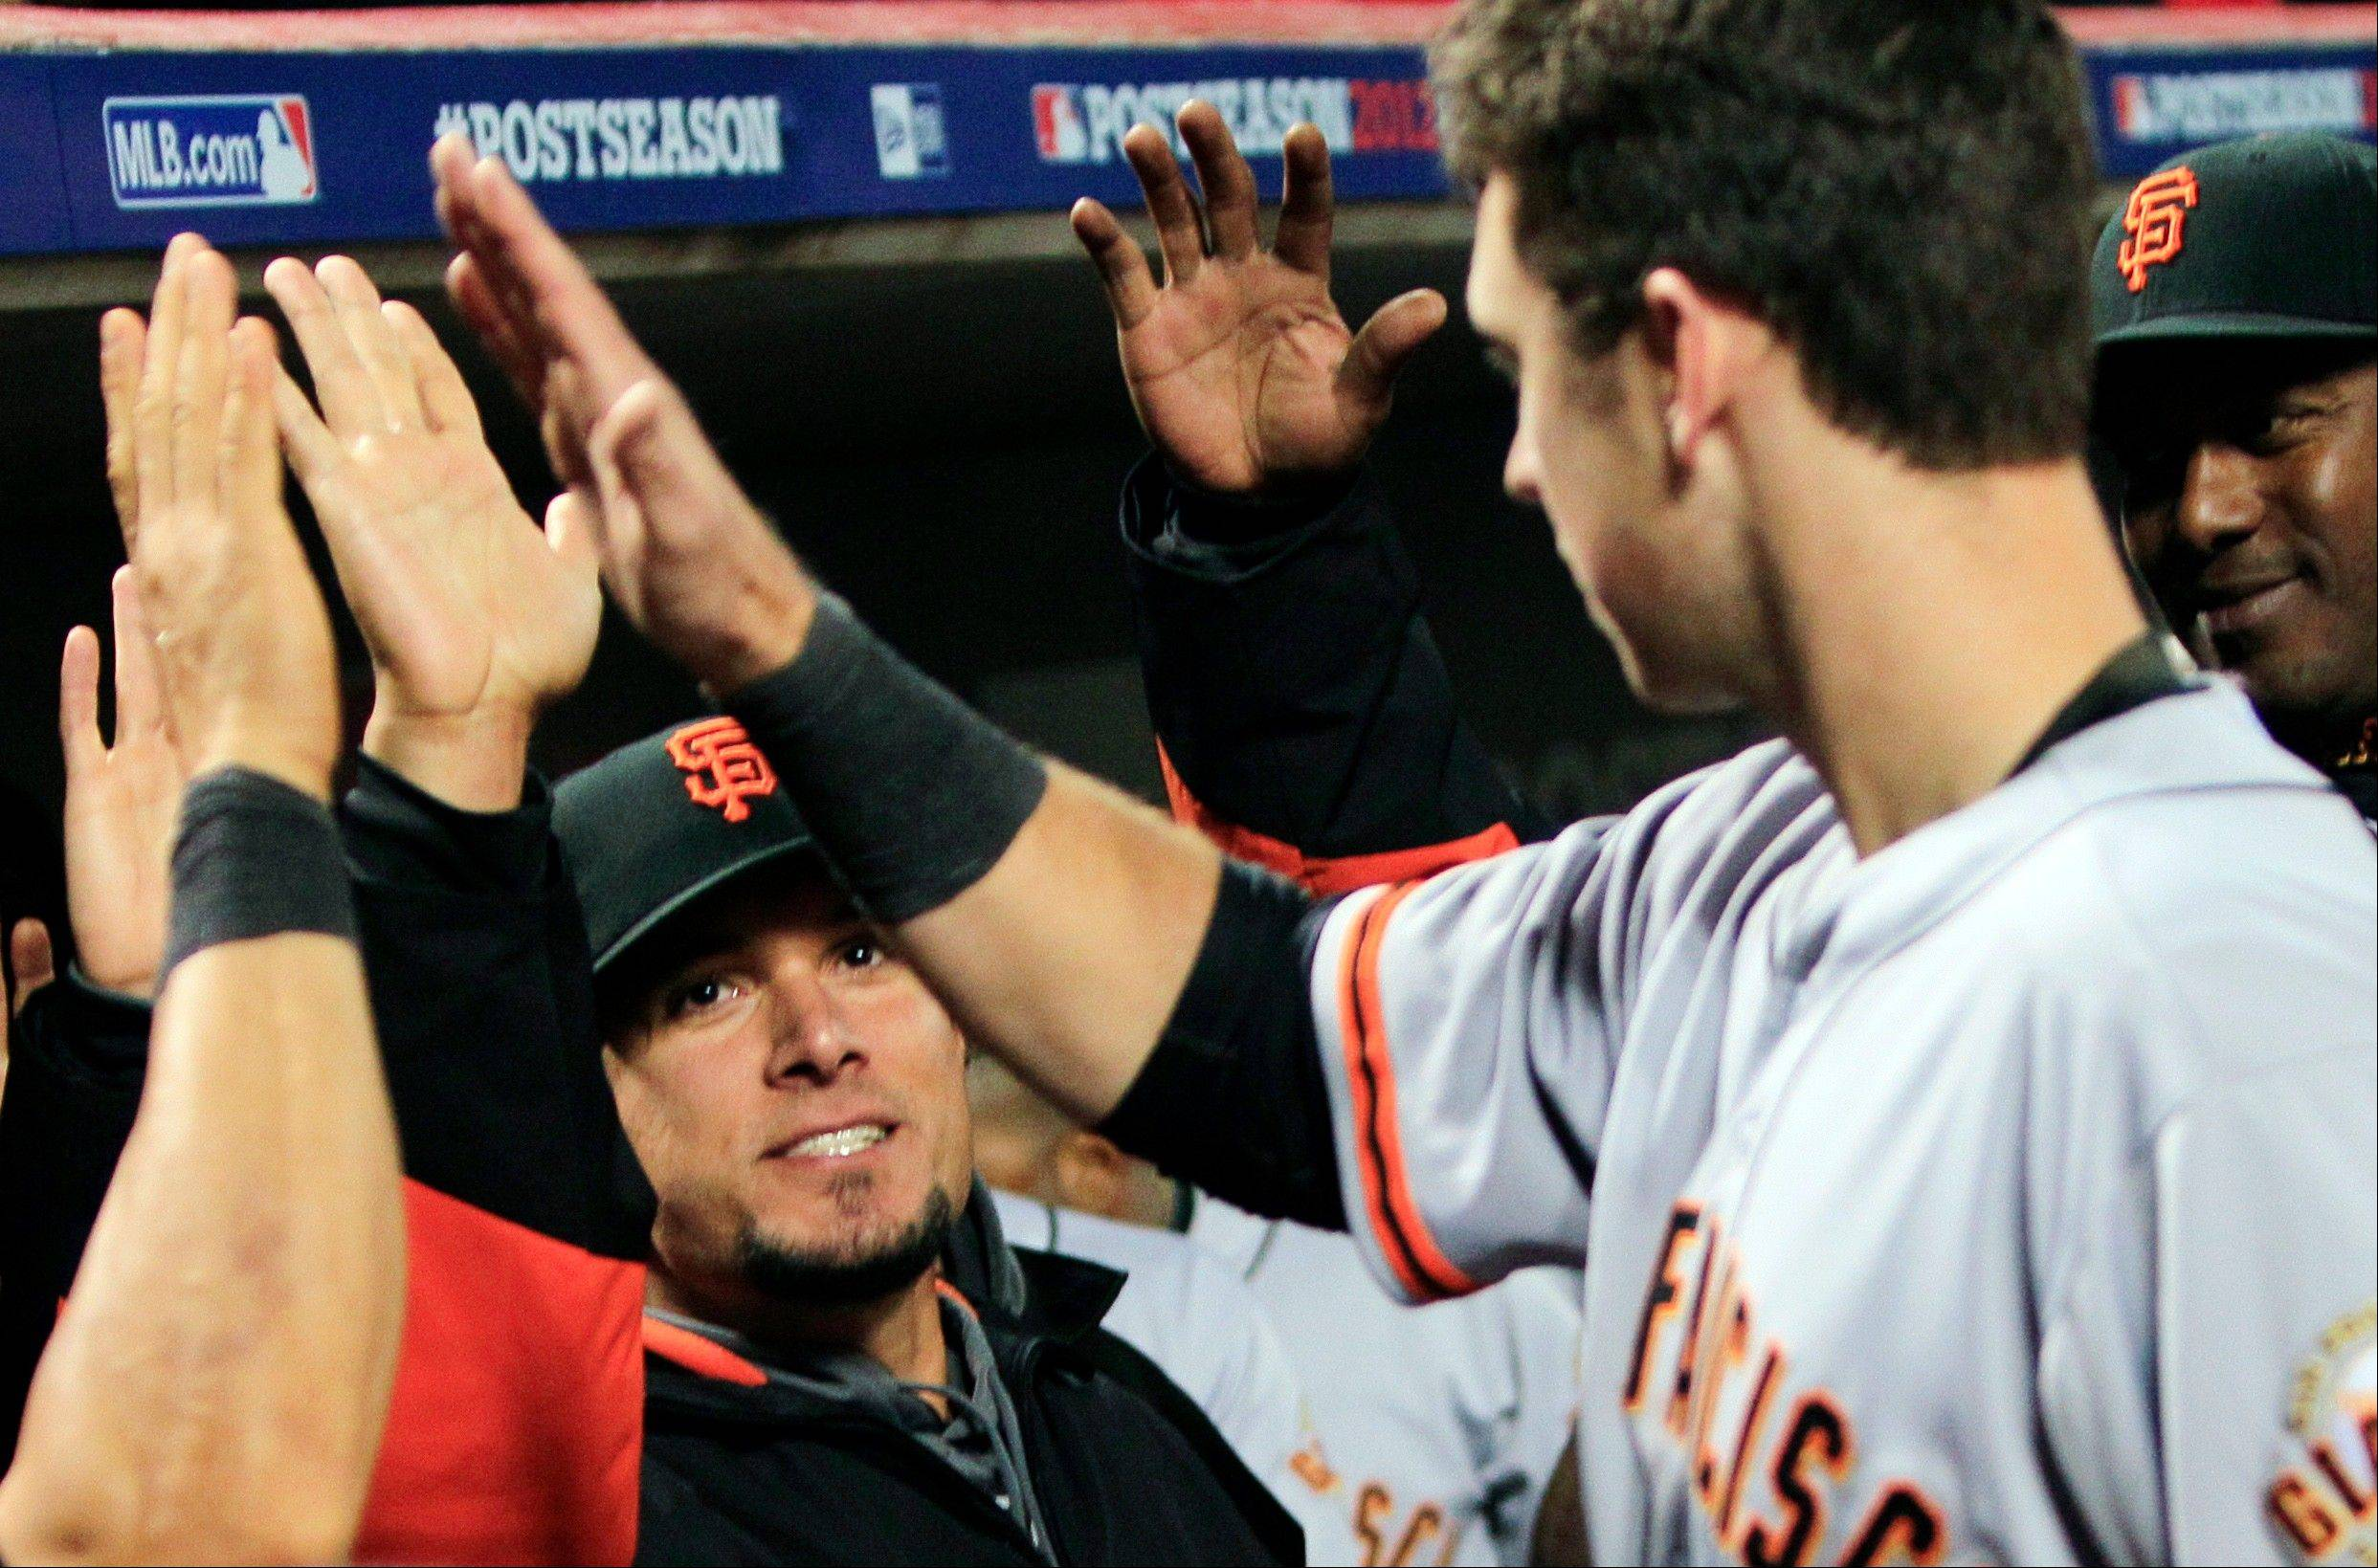 San Francisco Giants catcher Buster Posey, right, is congratulated after scoring in the 10th inning Tuesday during Game 3 of the National League division baseball series against the Cincinnati Reds in Cincinnati. The Giants won 2-1 in the 10th inning to cut their playoff deficit to 2-1.